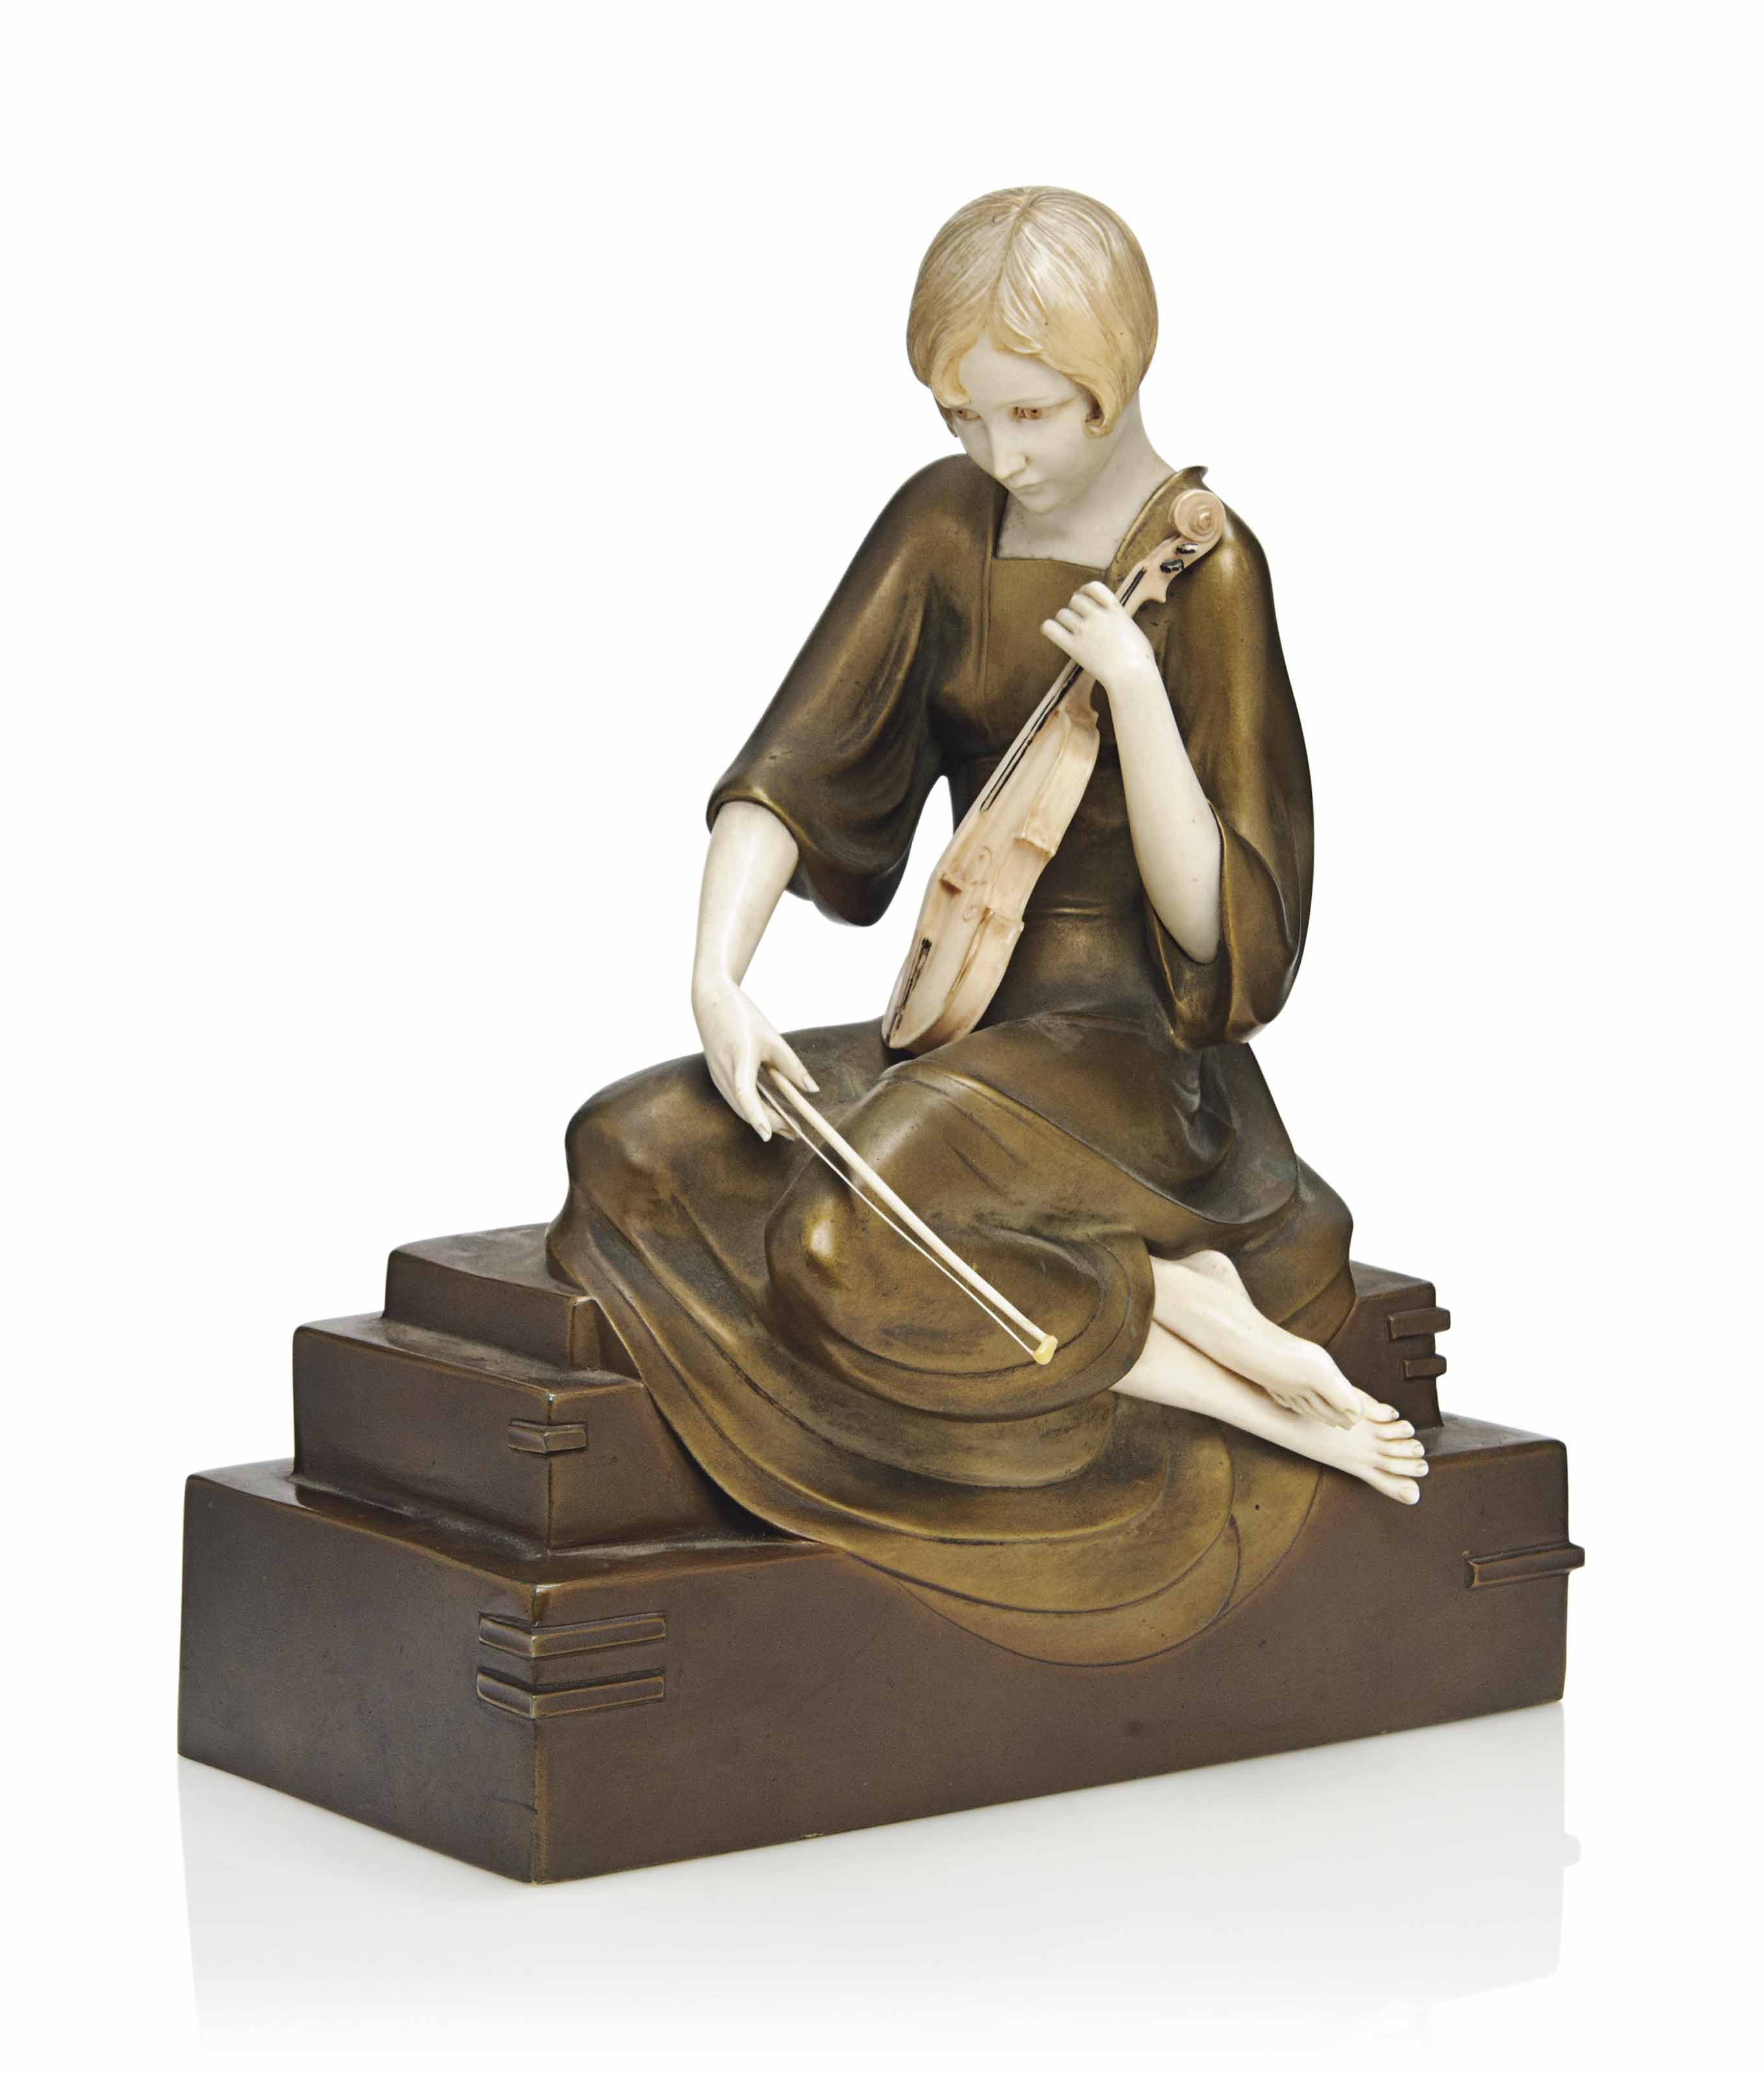 A PAUL PHILIPPE (1870-1930) ART DECO COLD-PAINTED BRONZE AND IVORY FIGURE